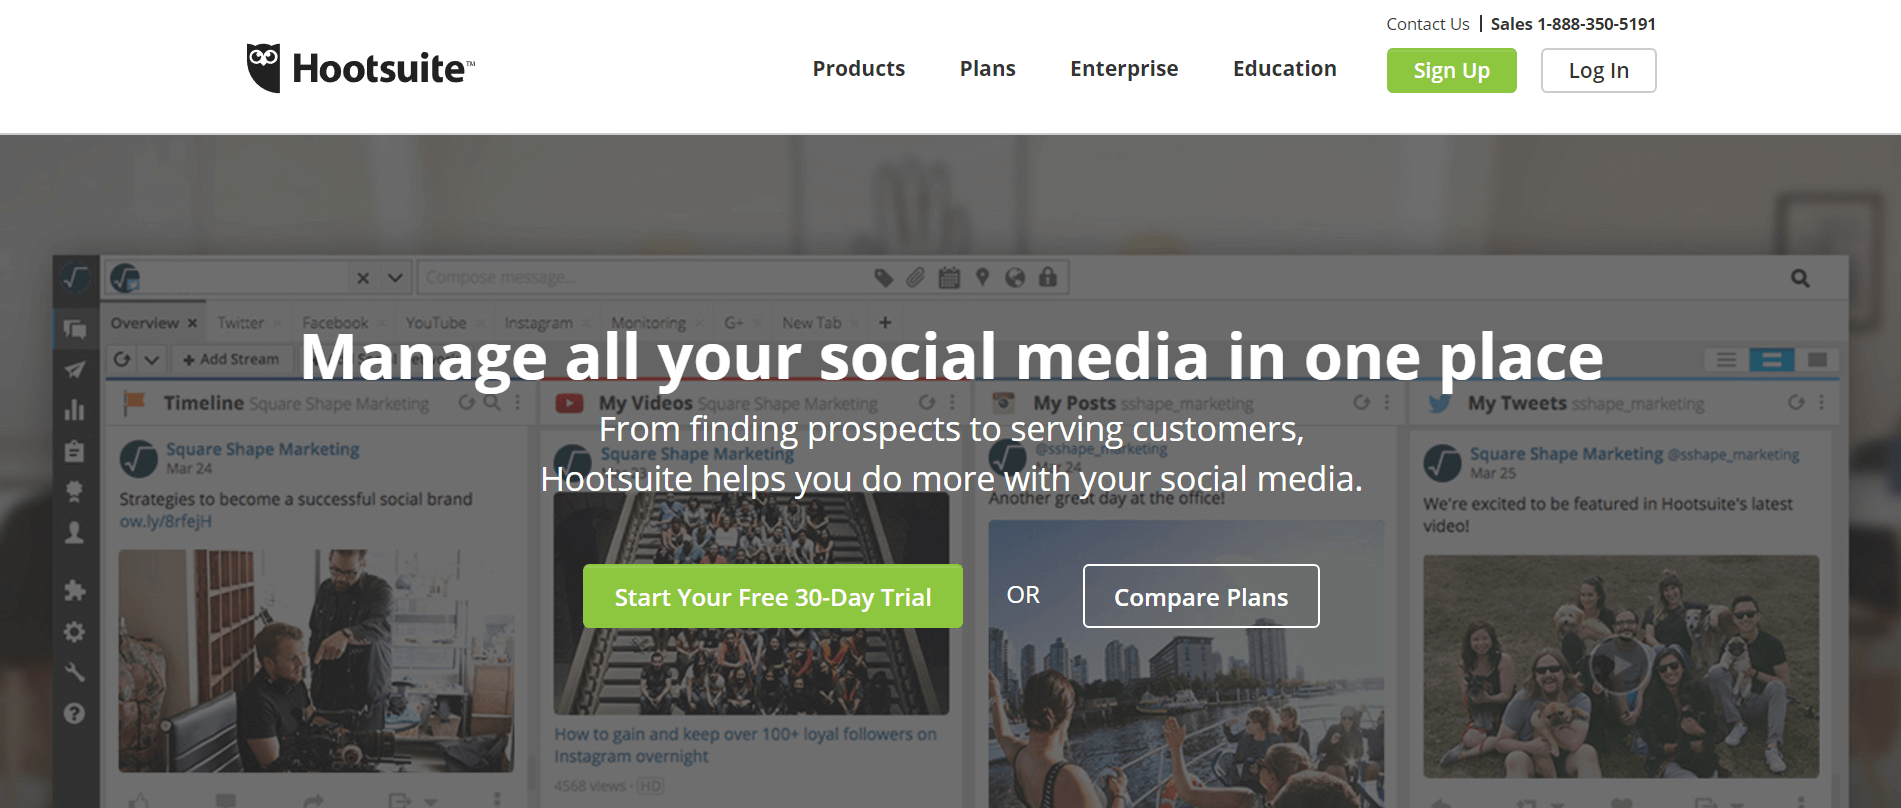 The Hootsuite home page.